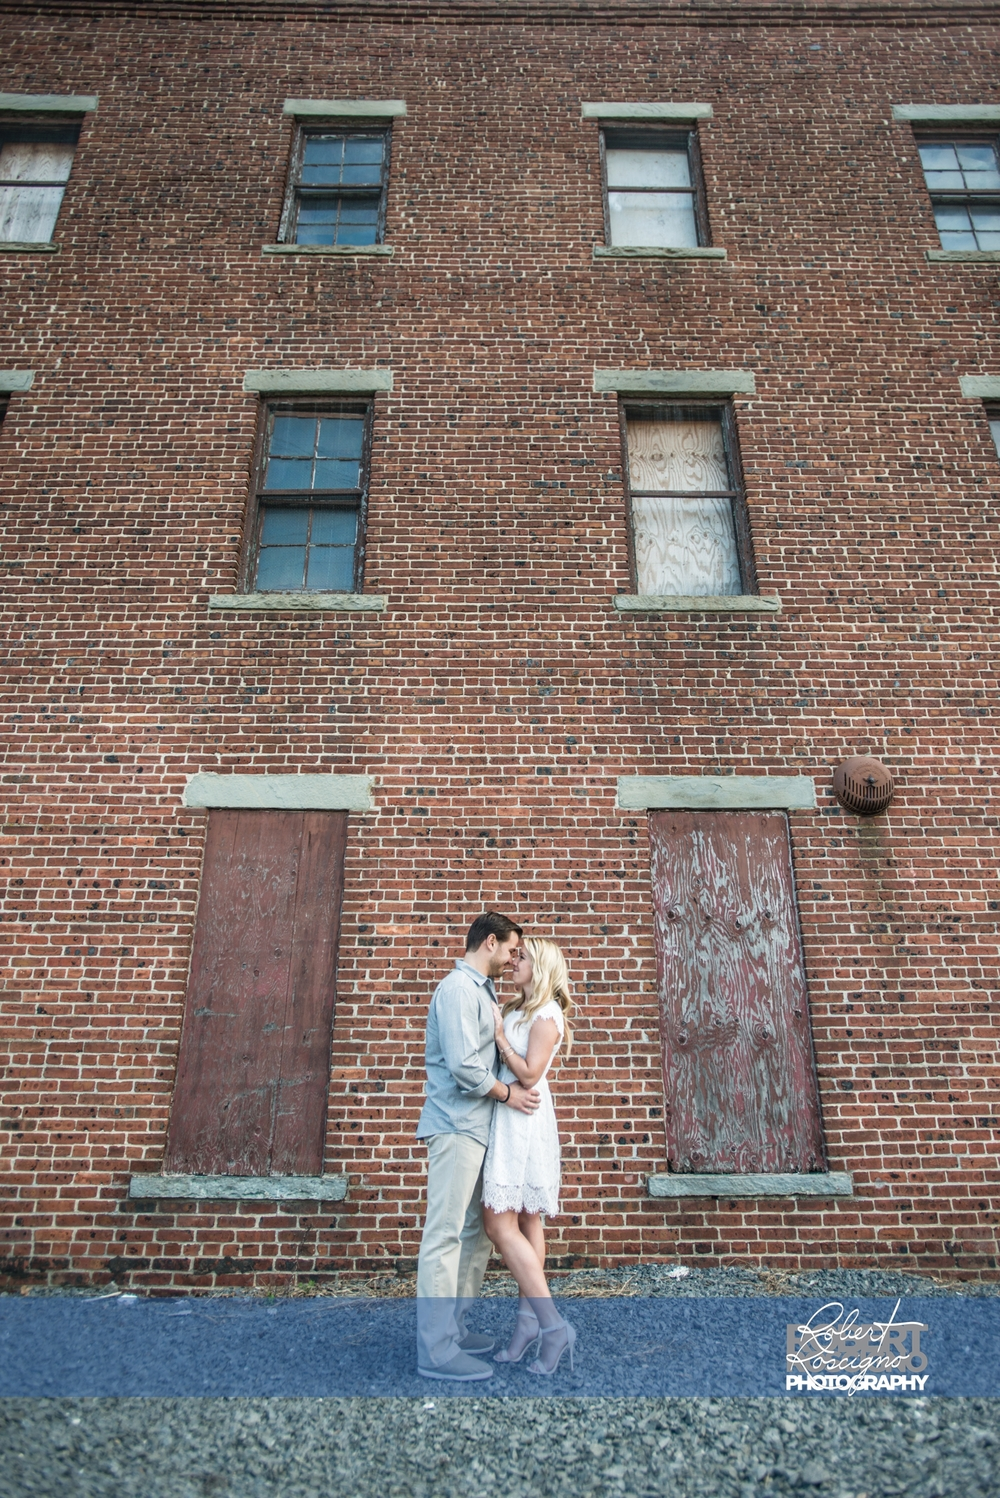 robertroscignophotography_engagement_wedding_photographer_ny_nj_connell_5